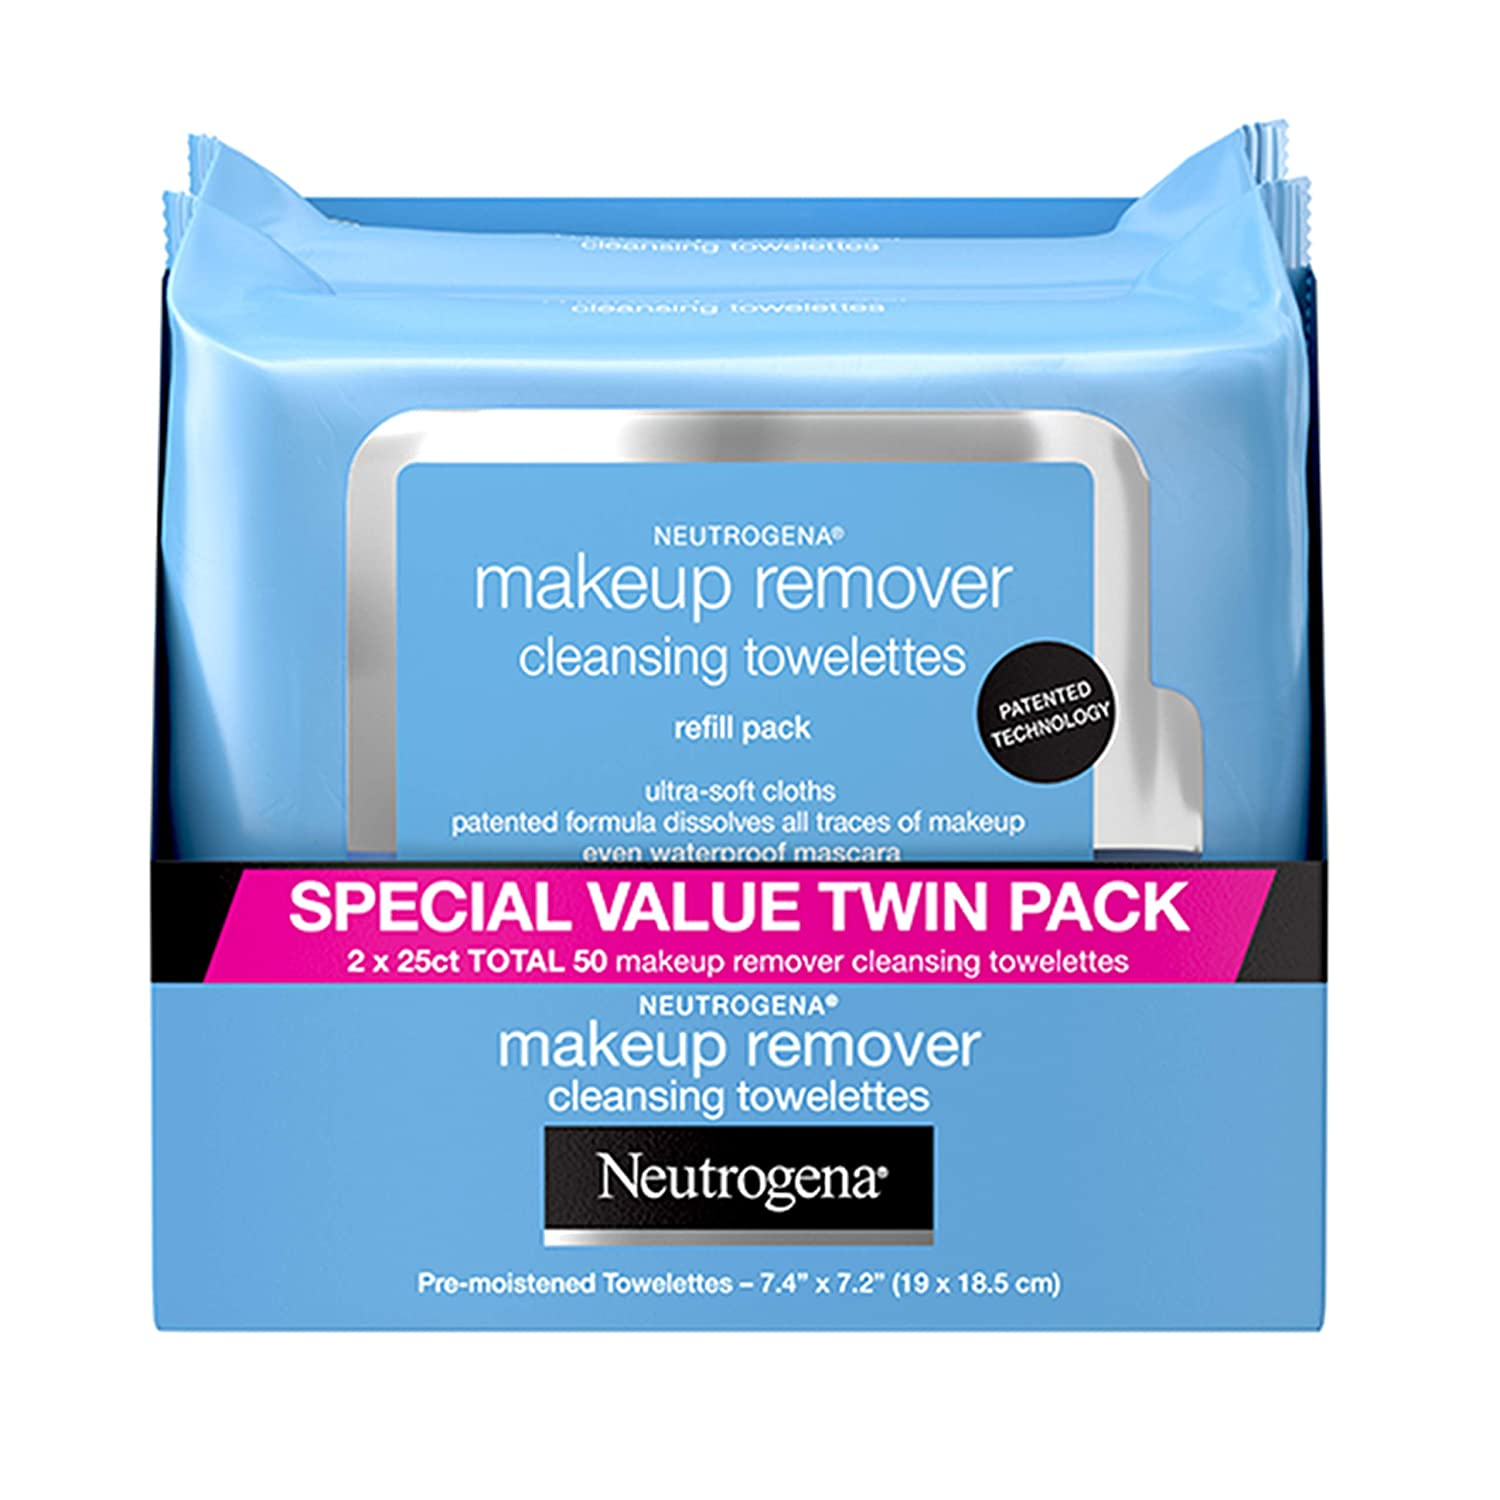 Neutrogena Makeup Remover Cleansing Face Wipes, Daily Cleansing Facial Towelettes to Remove Waterproof Makeup and Mascara, Alcohol-Free, Value Twin Pack, 25 count, 2 Pack: Beauty